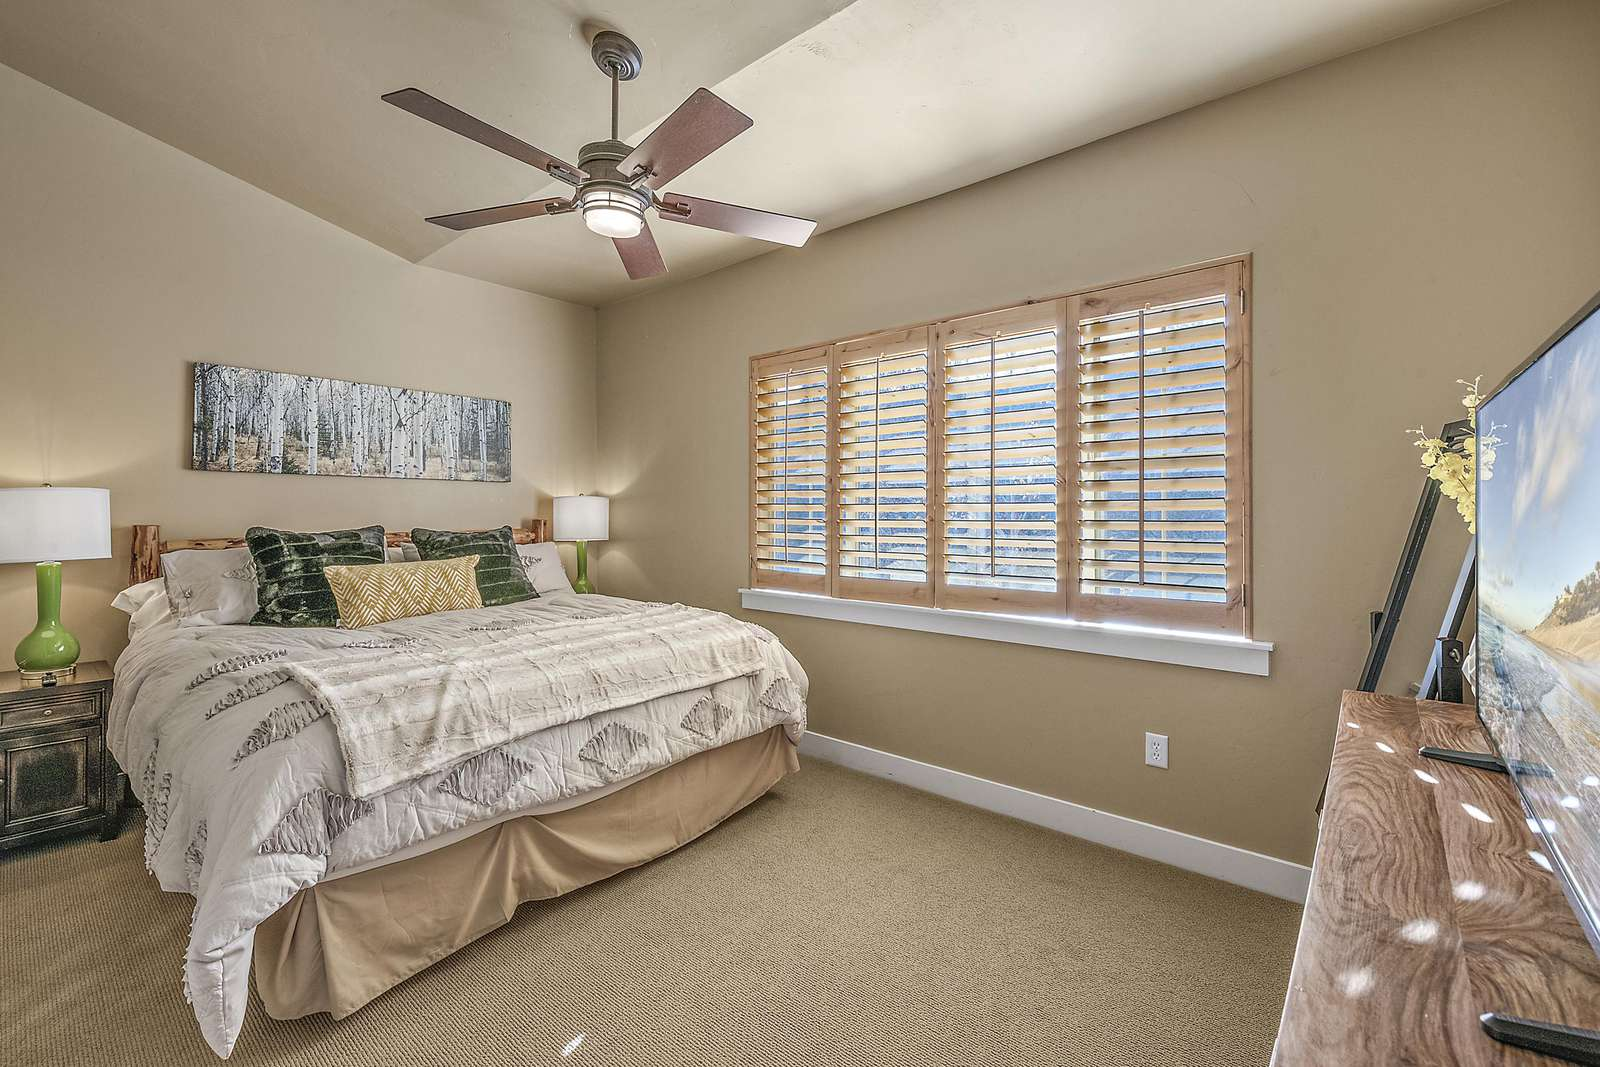 Master bedroom with personal dresser, closet, and TV